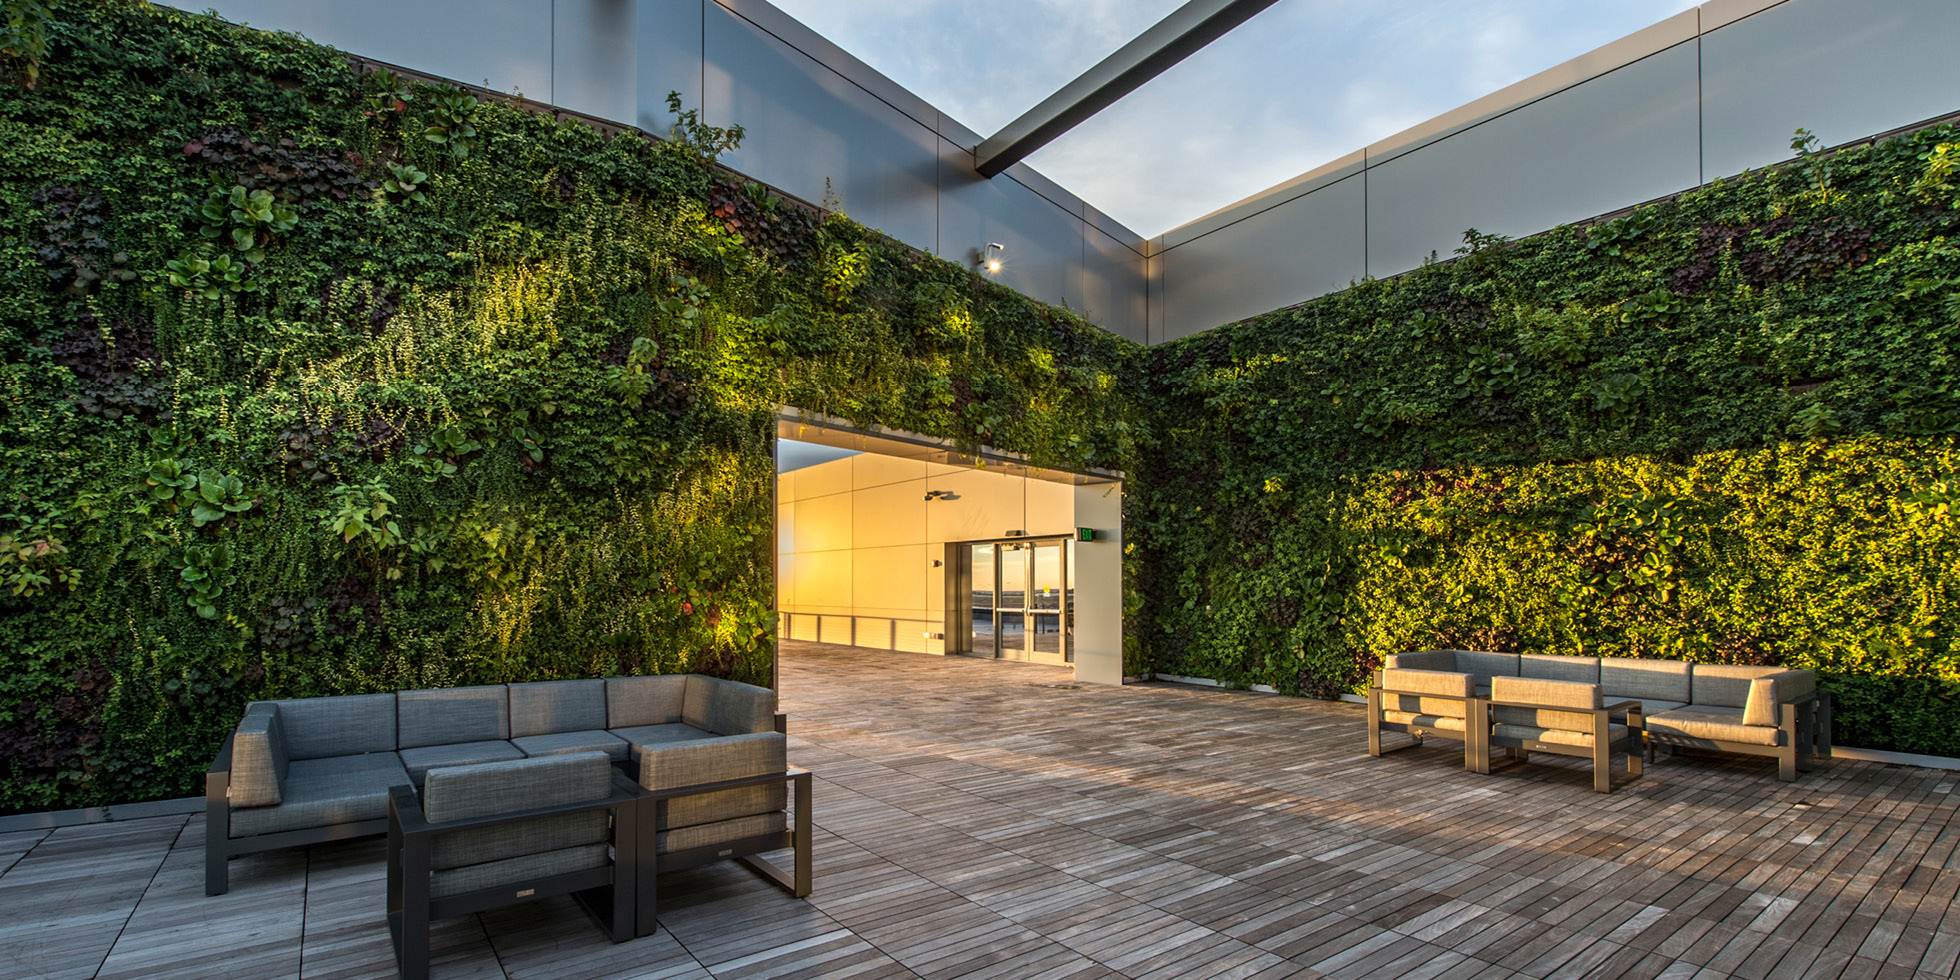 Boston Pier 4 Living Wall by Habitat Horticulture - View 1